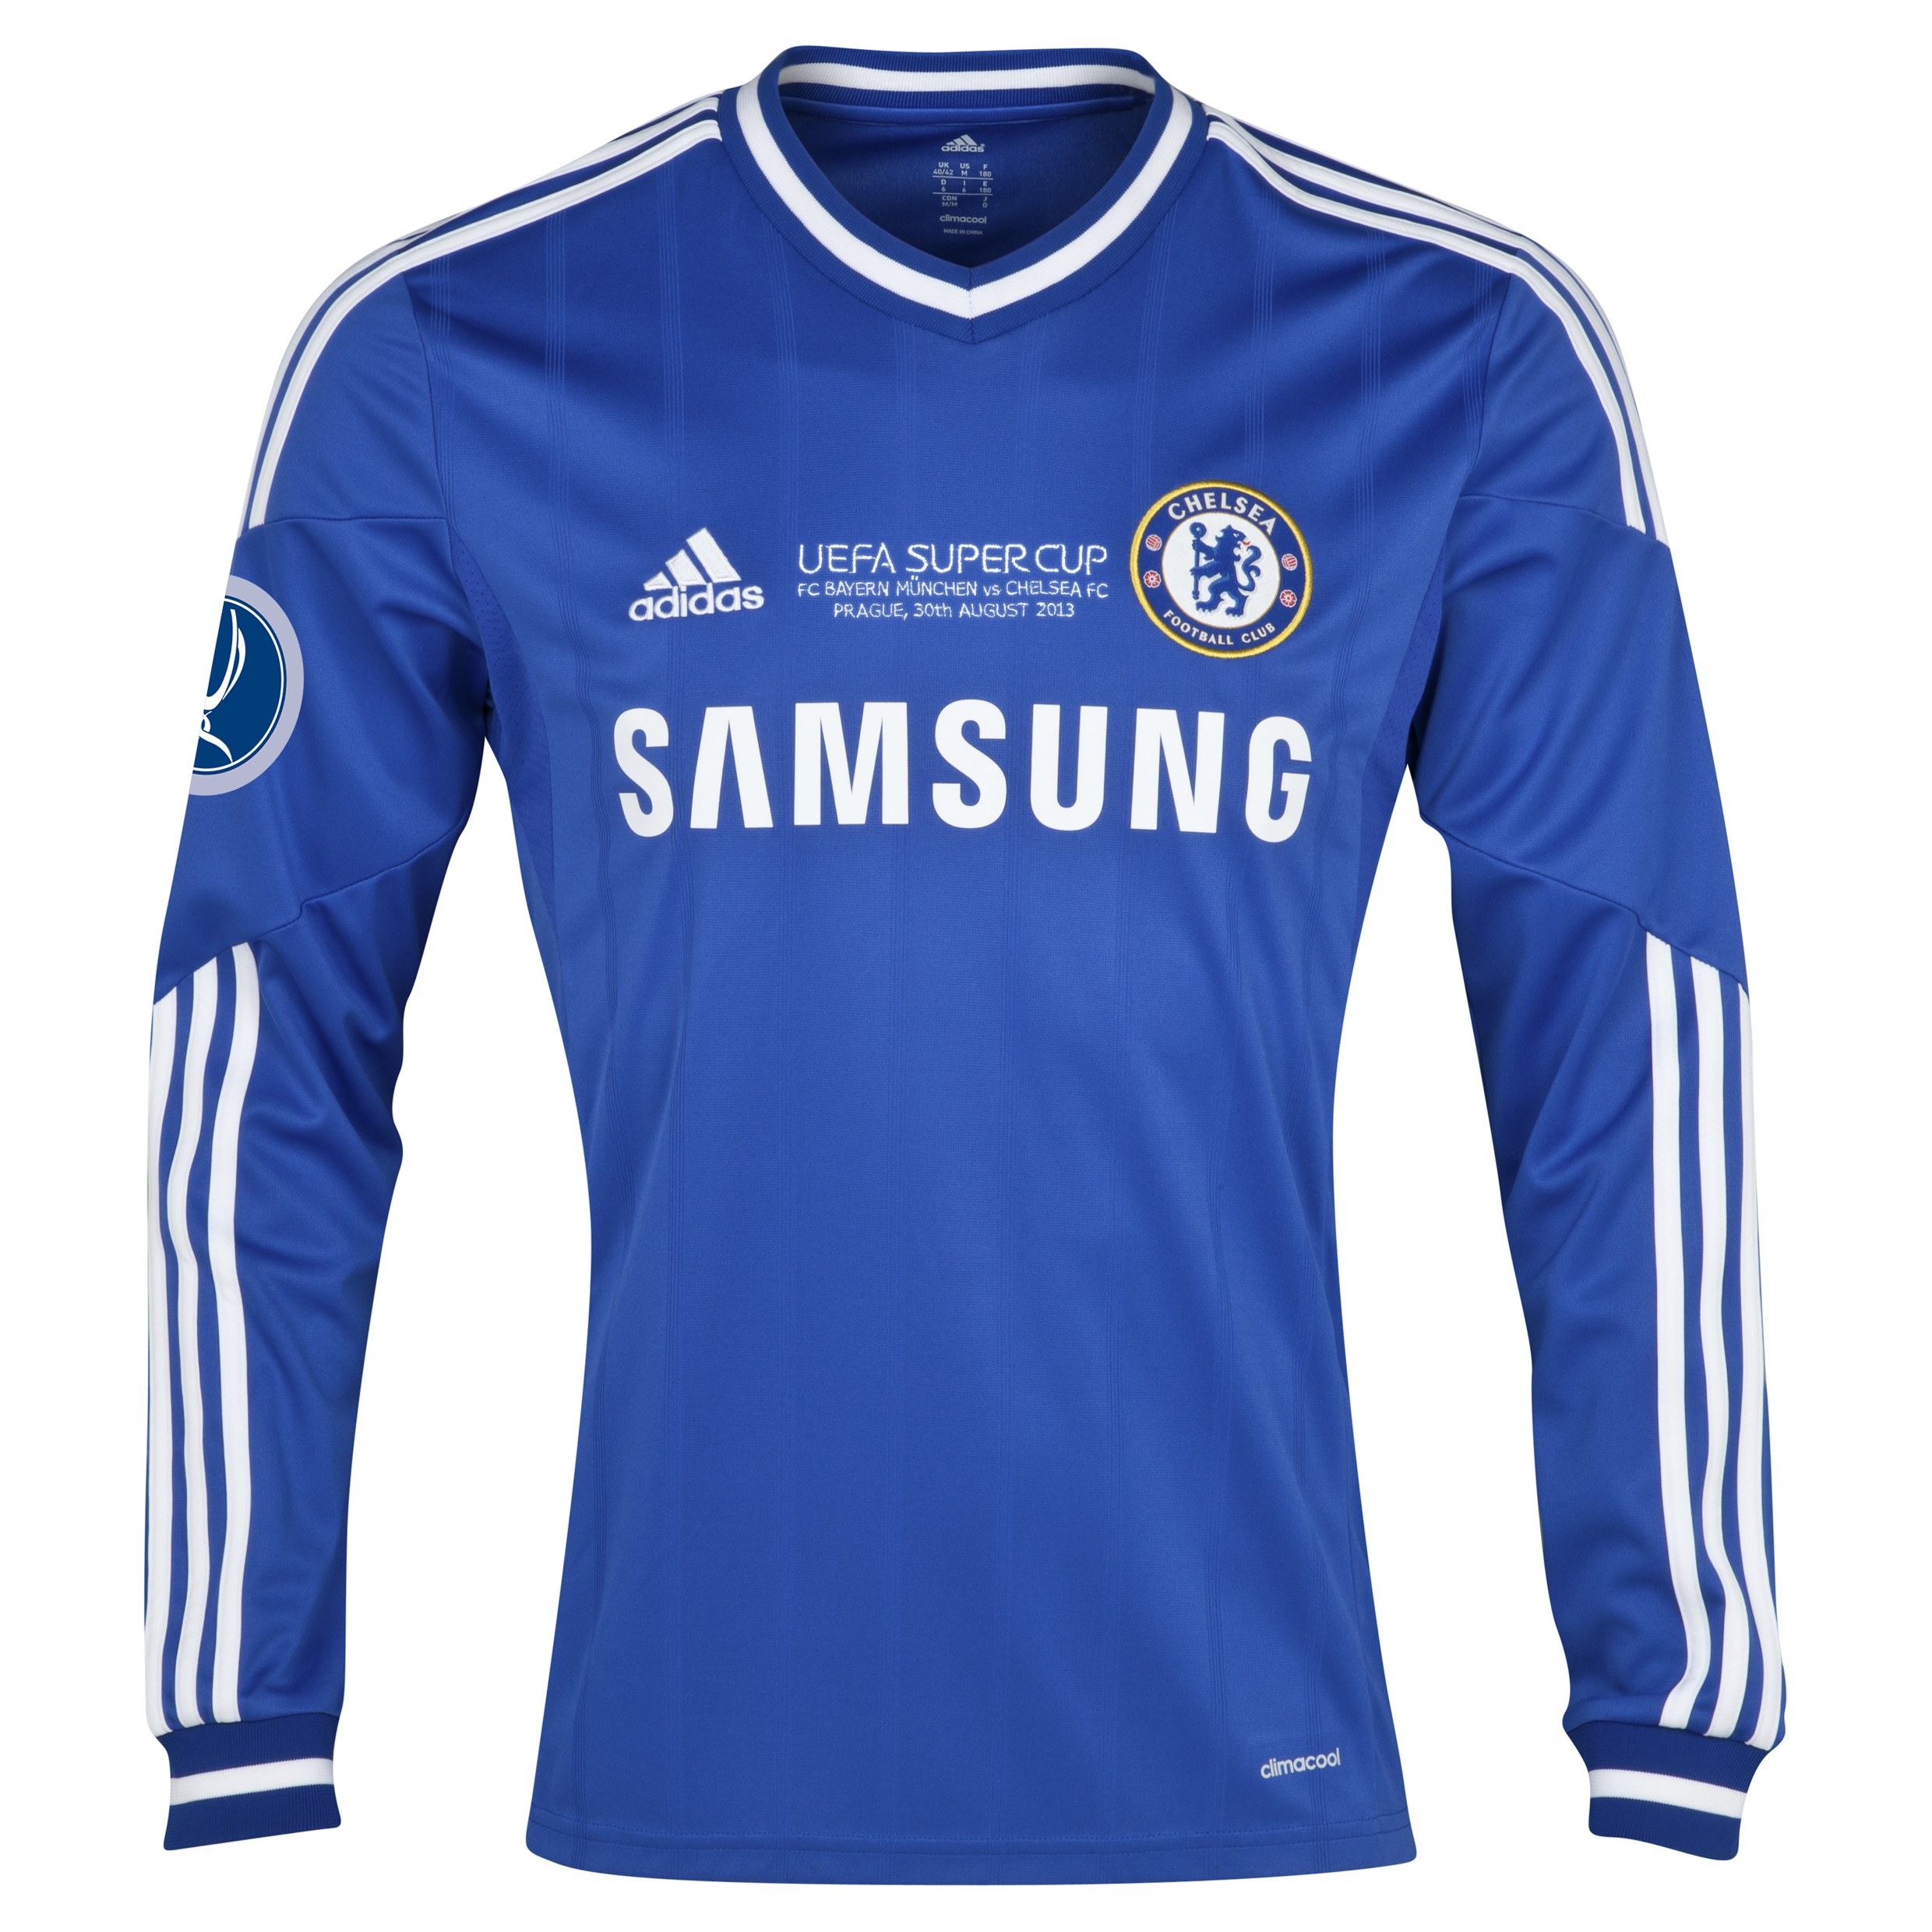 Chelsea Home Shirt 2013/14 - Long Sleeve - With Super Cup Embroidery